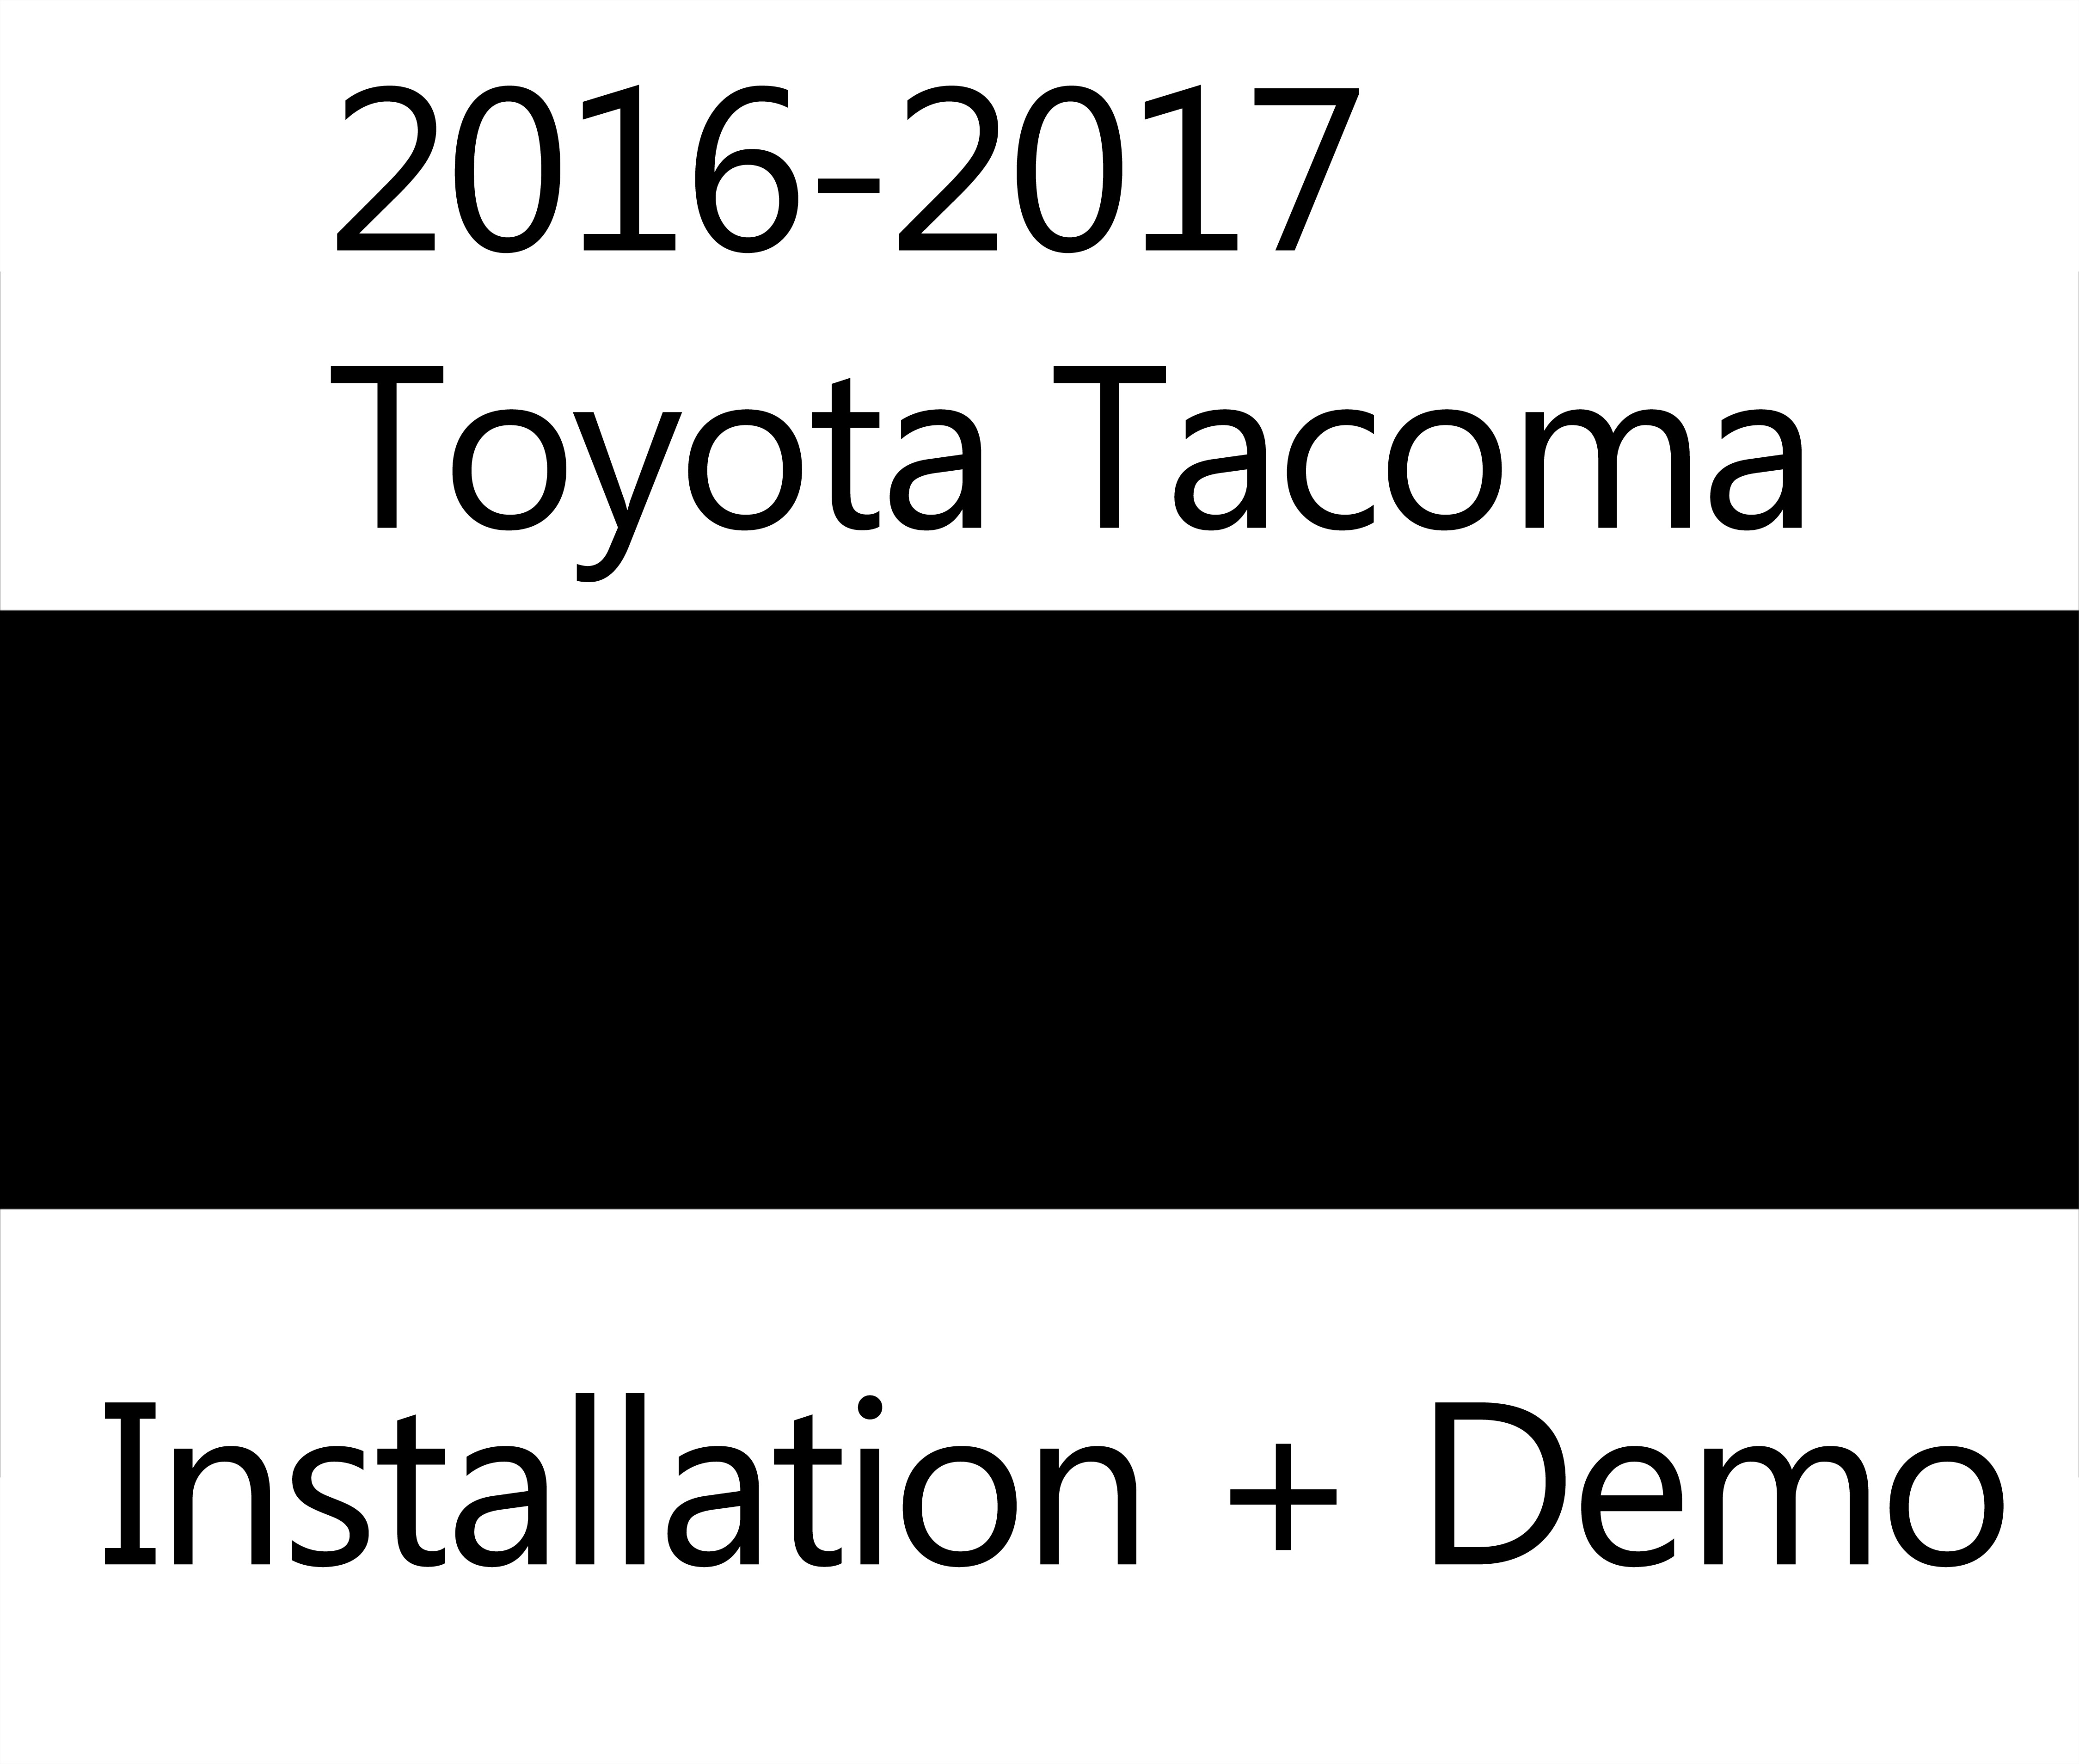 Toyota Tacoma 2015-2018 Service Manual: General Information